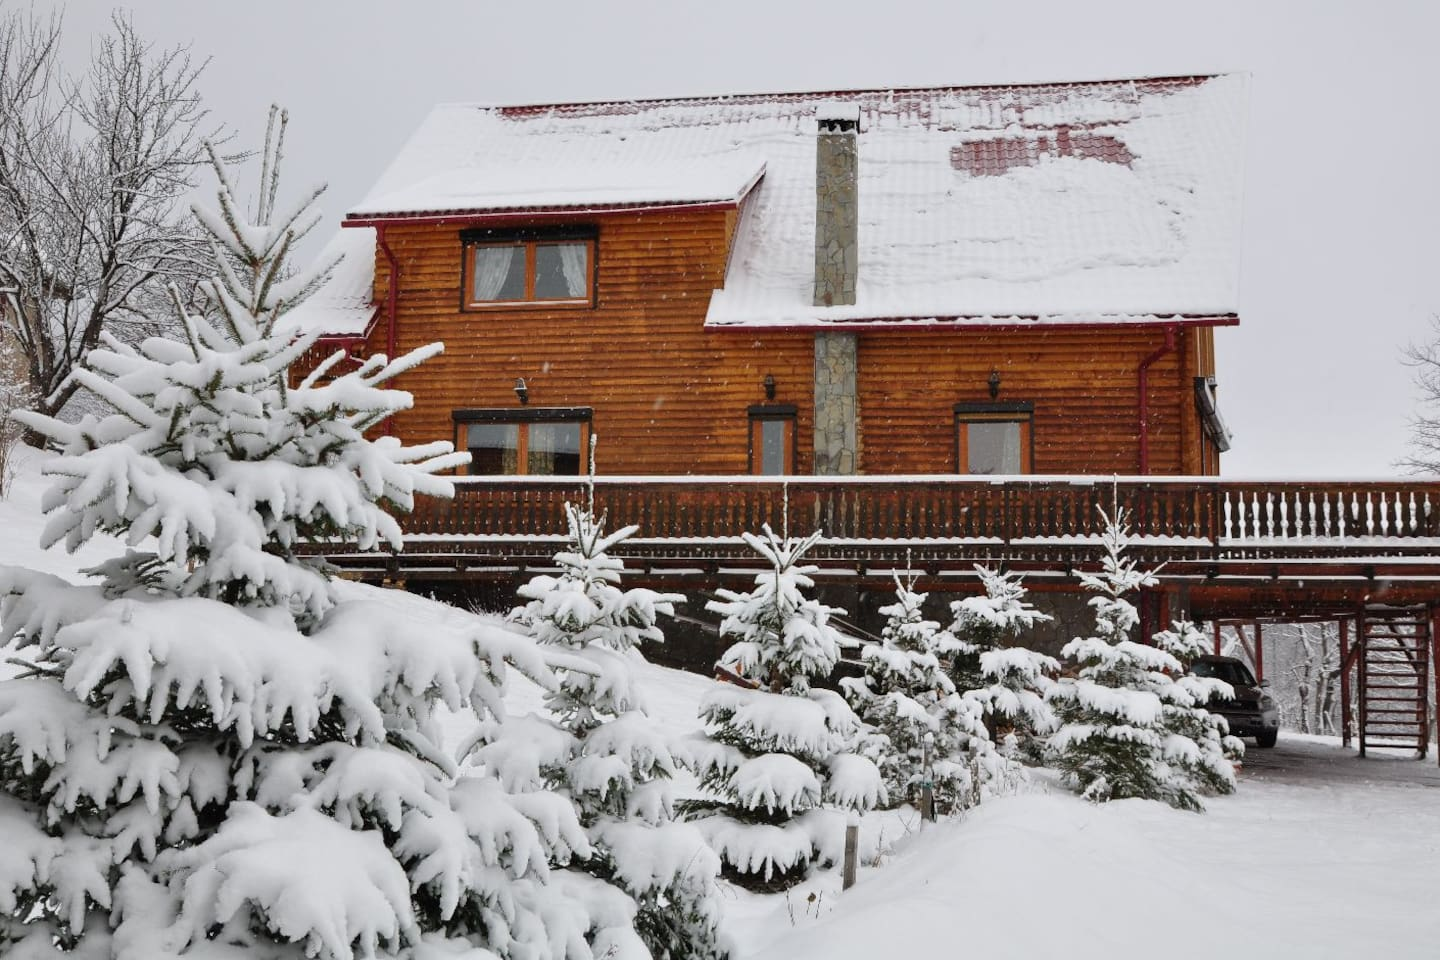 The Carpathian Log Home, perfect for ski or relaxation.